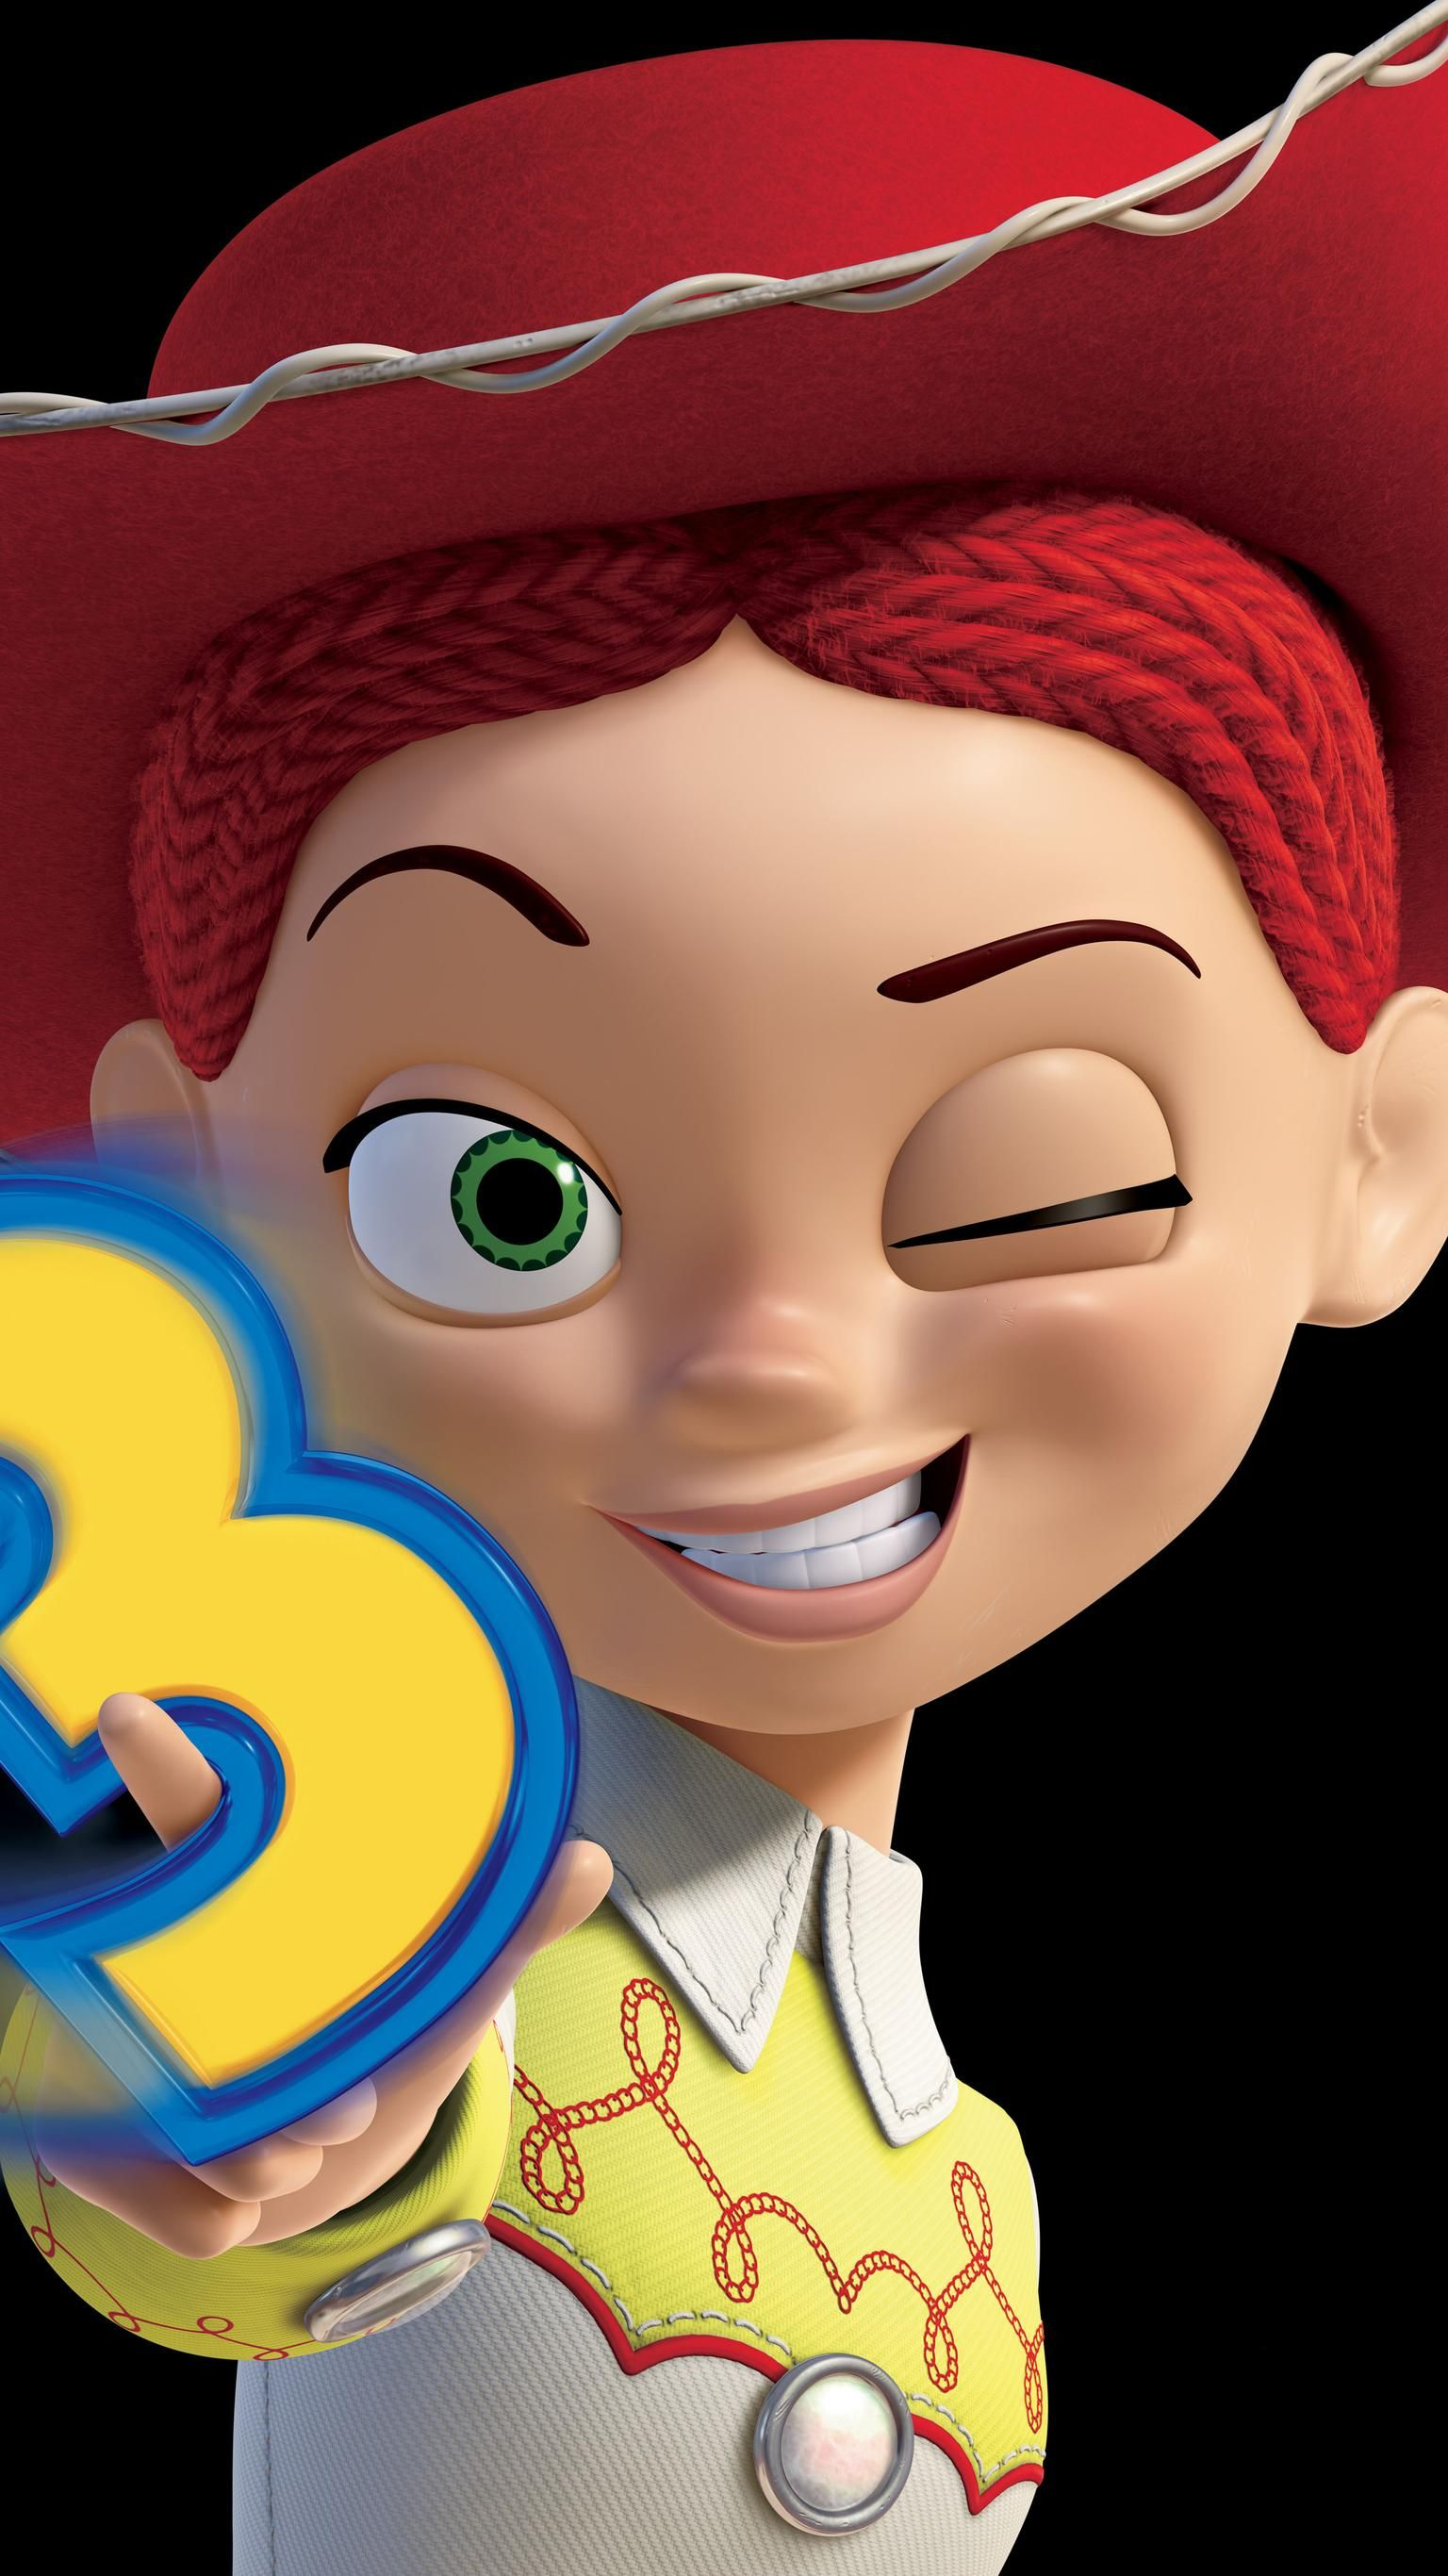 Pin By Cami On Toy Story Wallpapers Jessie Toy Story Wallpaper Iphone Disney Disney Monsters